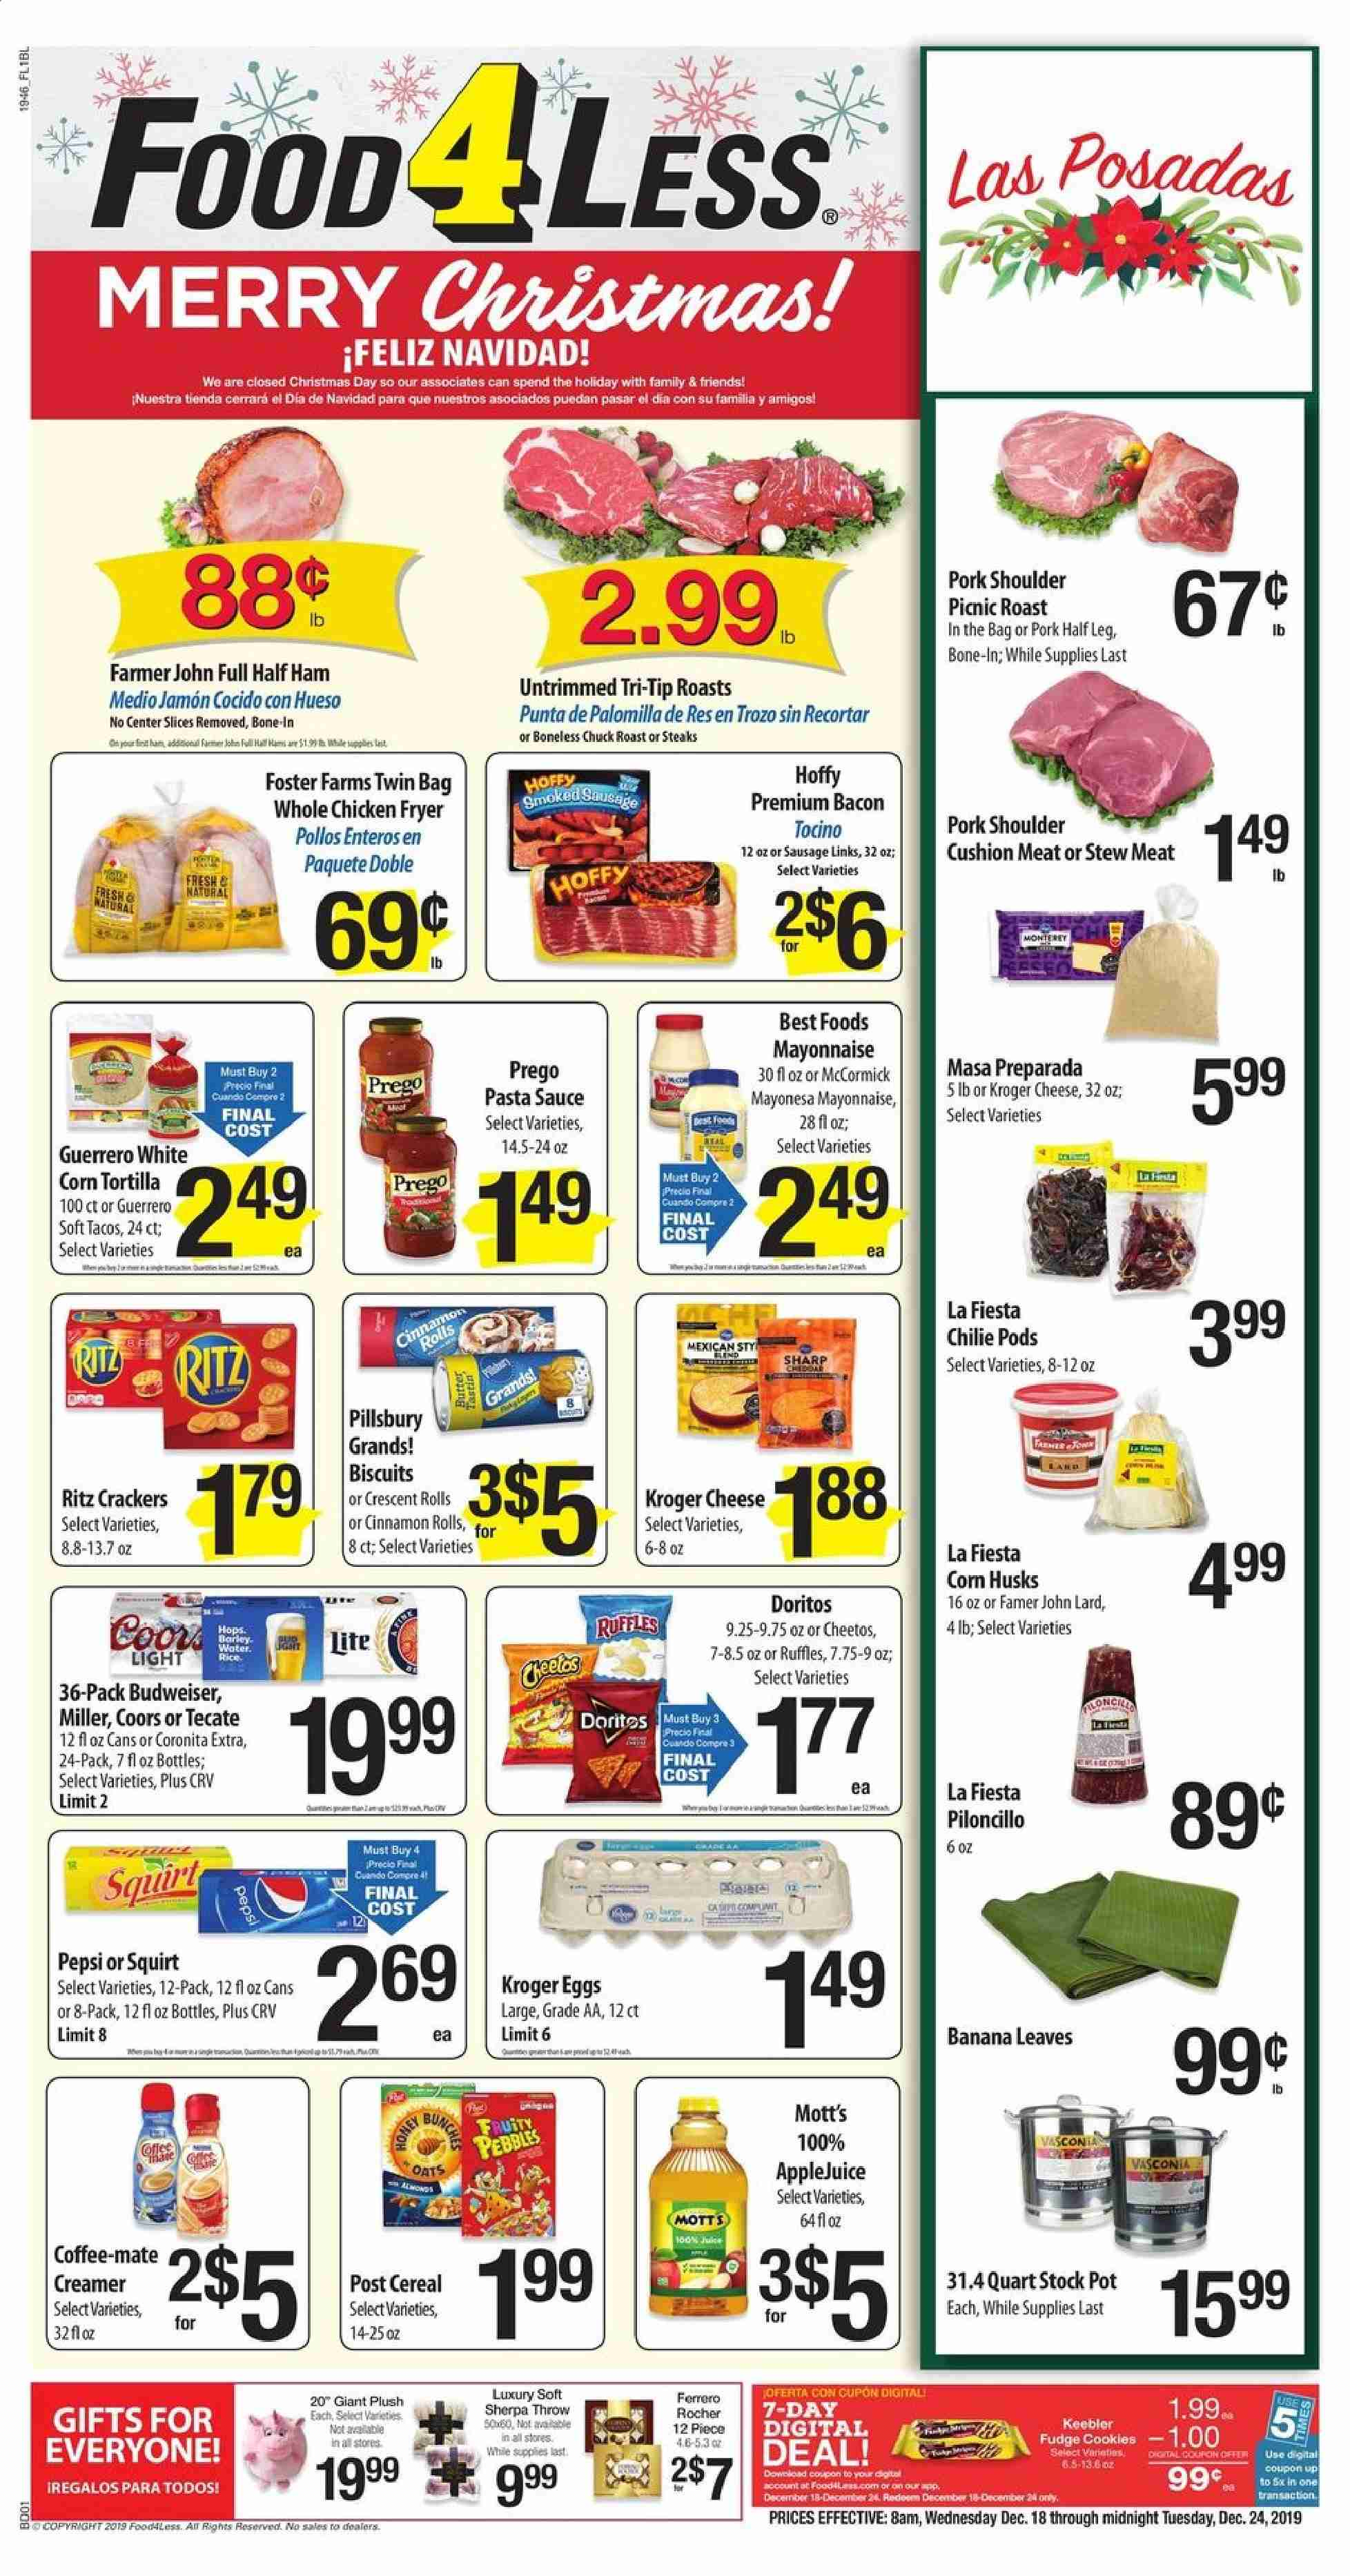 Food 4 Less Flyer - 12.18.2019 - 12.24.2019 - Sales products - Budweiser, Coors, cushion, stew meat, corn, rolls, cinnamon rolls, crescent roll dough, bacon, ham, sausage, cheese, Coffee-Mate, eggs, butter, lard, creamer, mayonnaise, sauce, biscuits, cookies, Fudge, Ferrero Rocher, cracker, crackers, Doritos, Cheetos, oats, Pillsbury, cereals, rice, pasta, pasta sauce, Pepsi, water, whole chicken, chicken, pork meat, pork shoulder, pot, Sharp, half ham. Page 1.